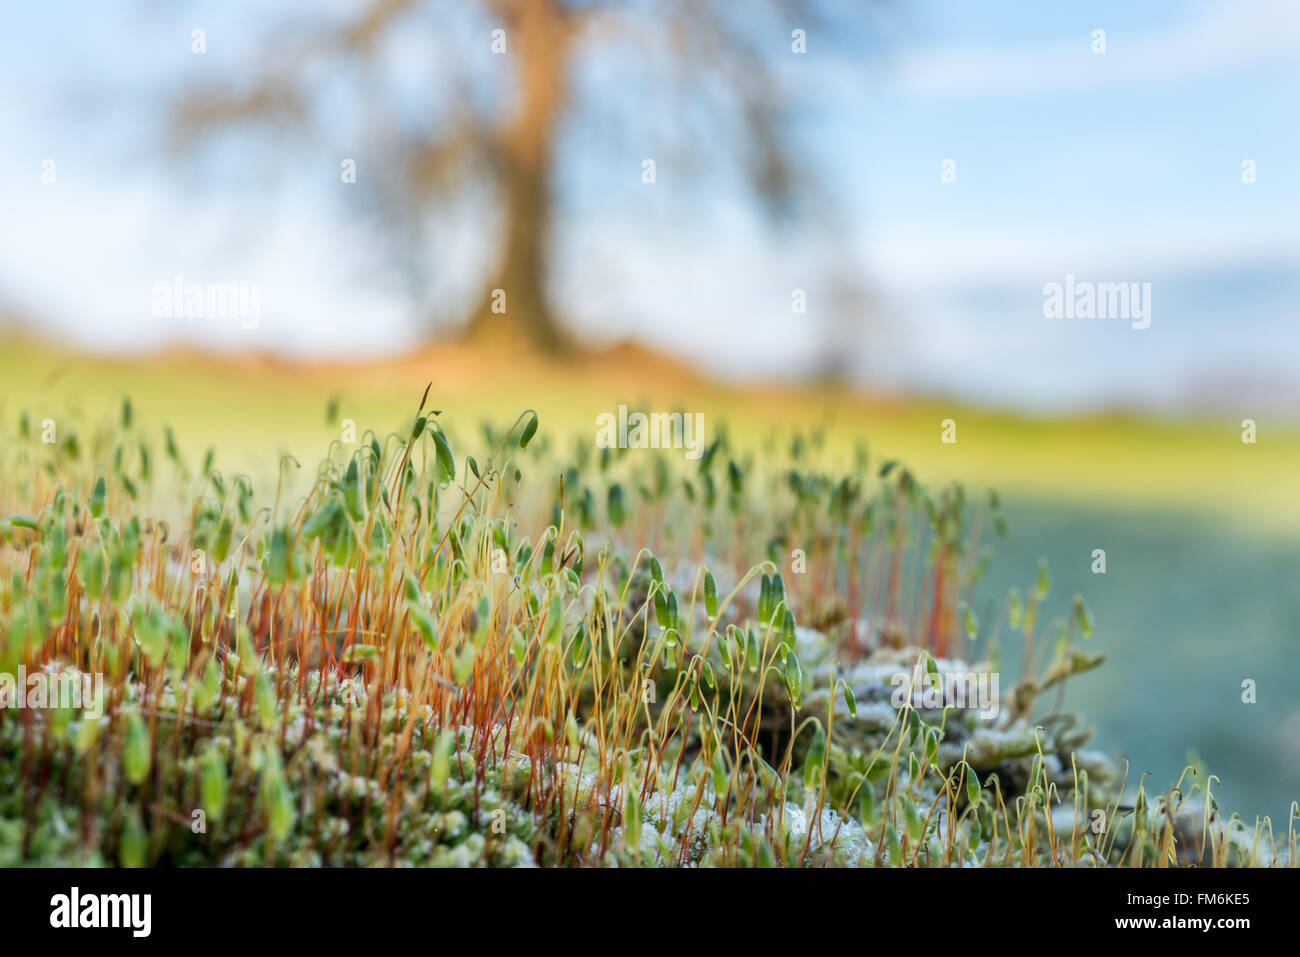 The fruiting bodies of a moss on a fallen tree, with a living tree in the background. Brecon Beacons, February - Stock Image